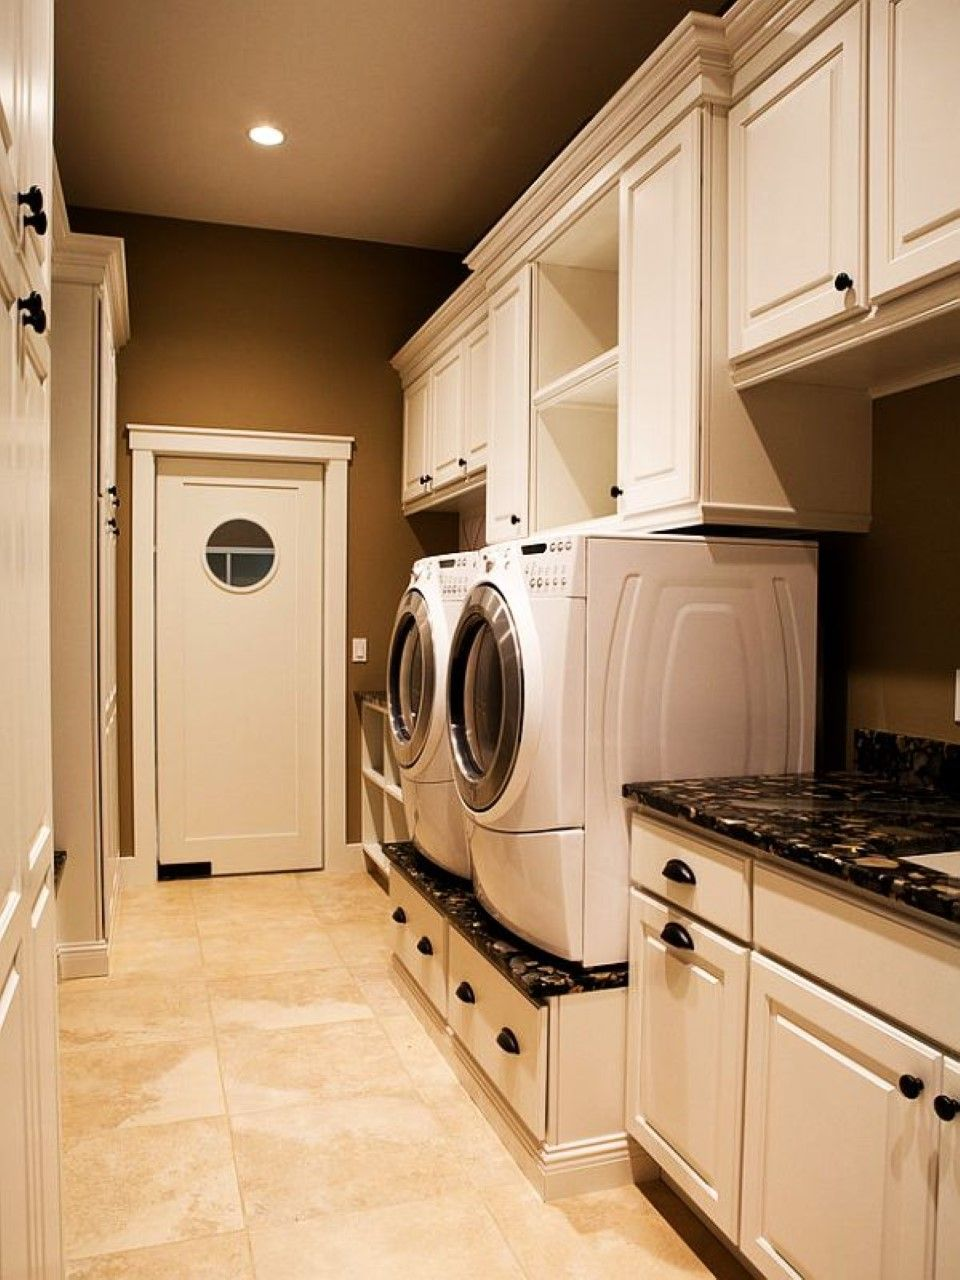 Laundry Room Mesmerizing Brown Laundry Room With White Wooden Wall Storages On Cream Ceramic Flo Laundry Room Remodel Dream Laundry Room Laundry Room Cabinets